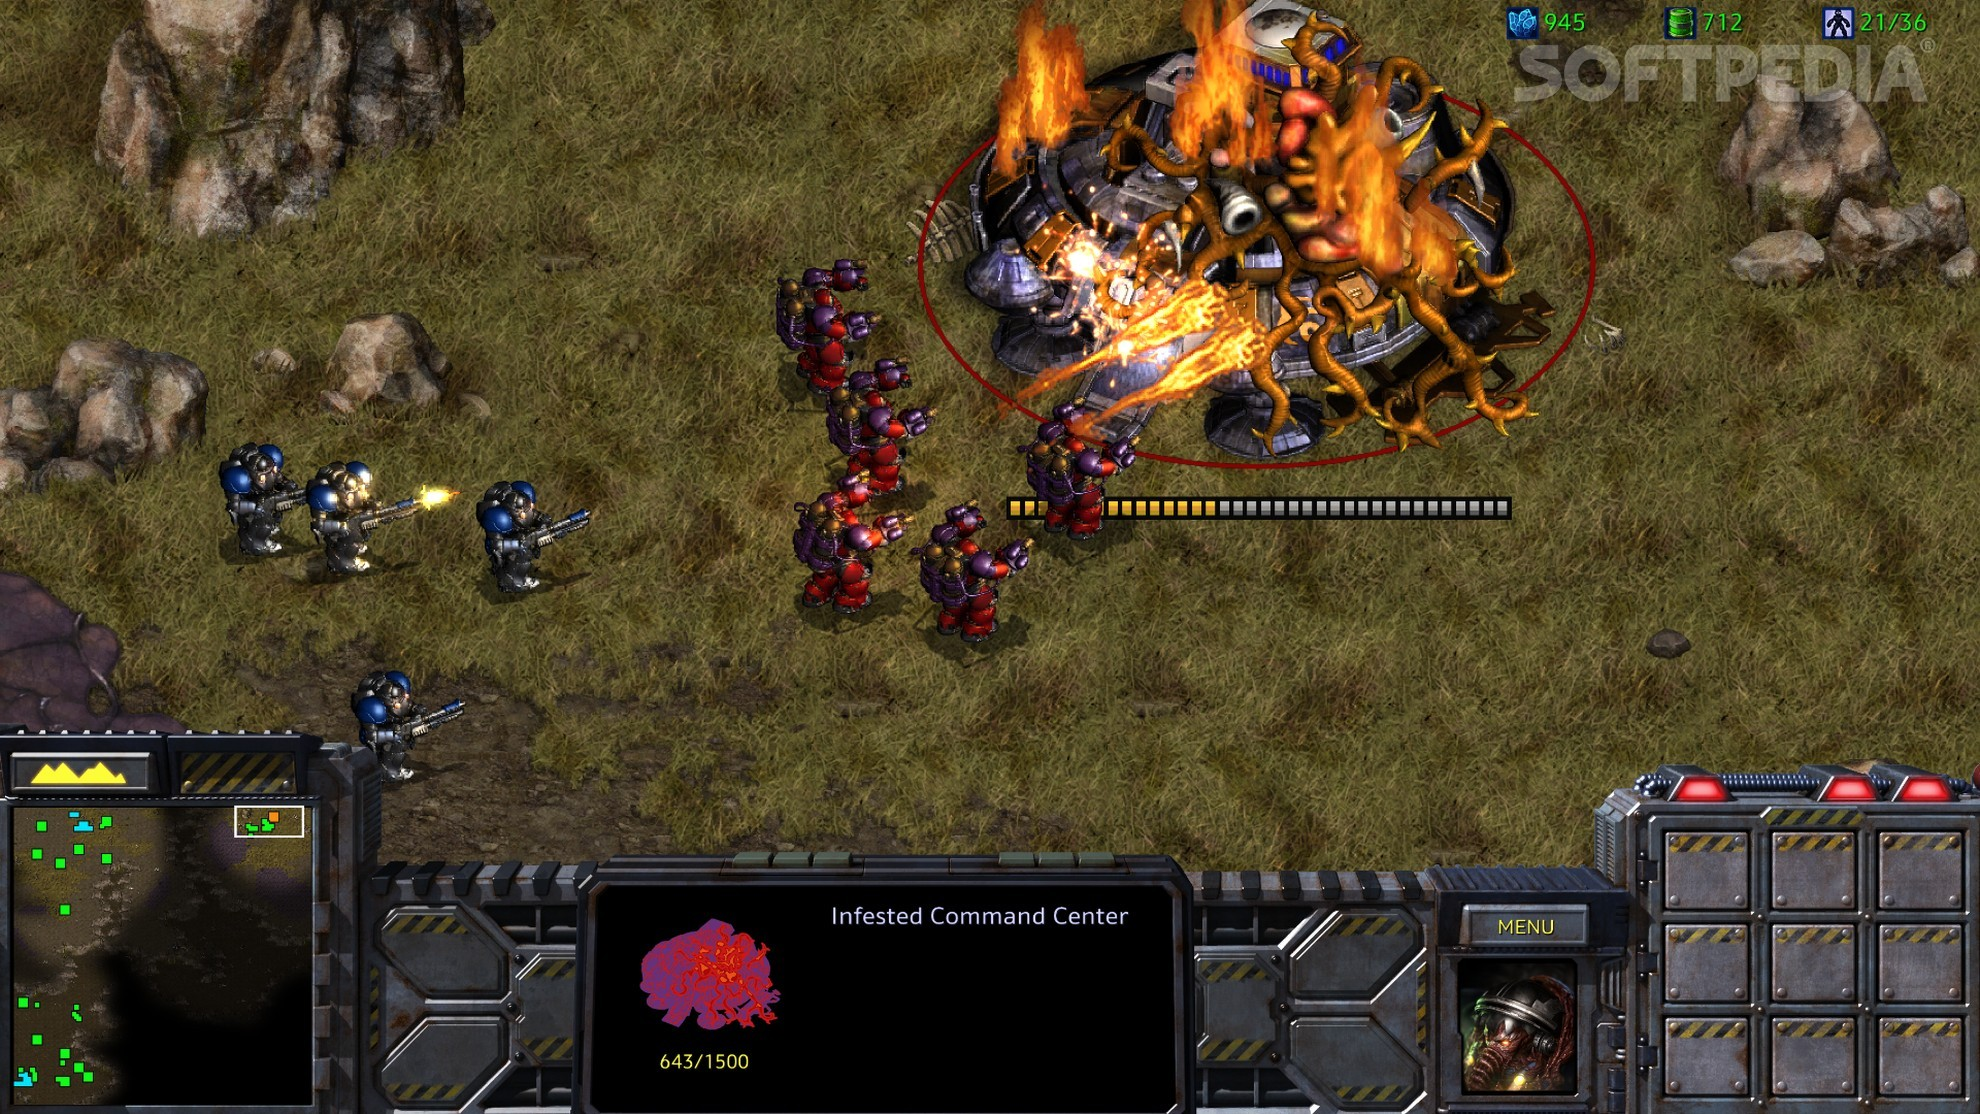 StarCraft: Remastered Review - Fueling Nostalgia For Old Gamers